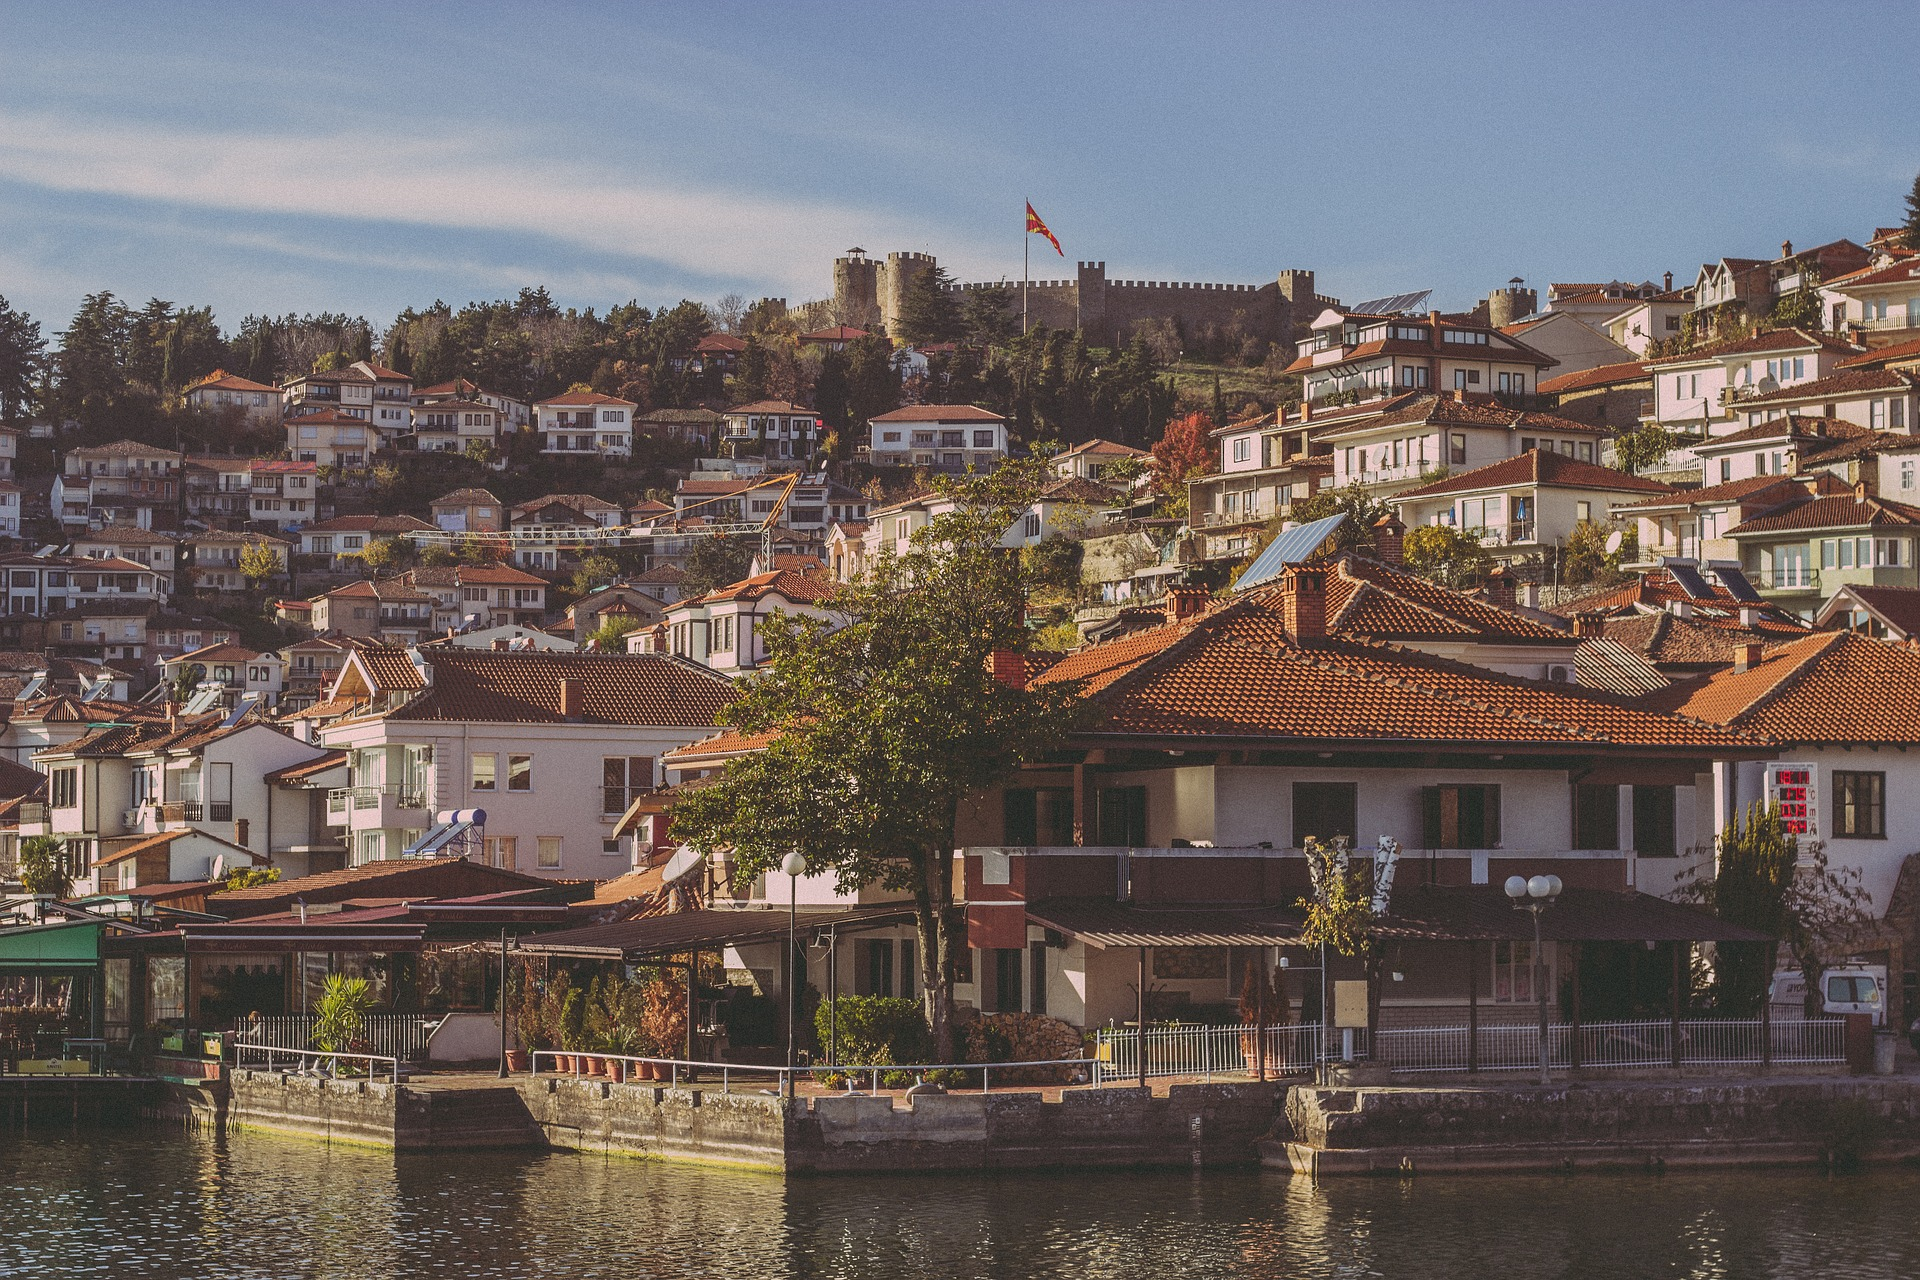 The town of Ohrid